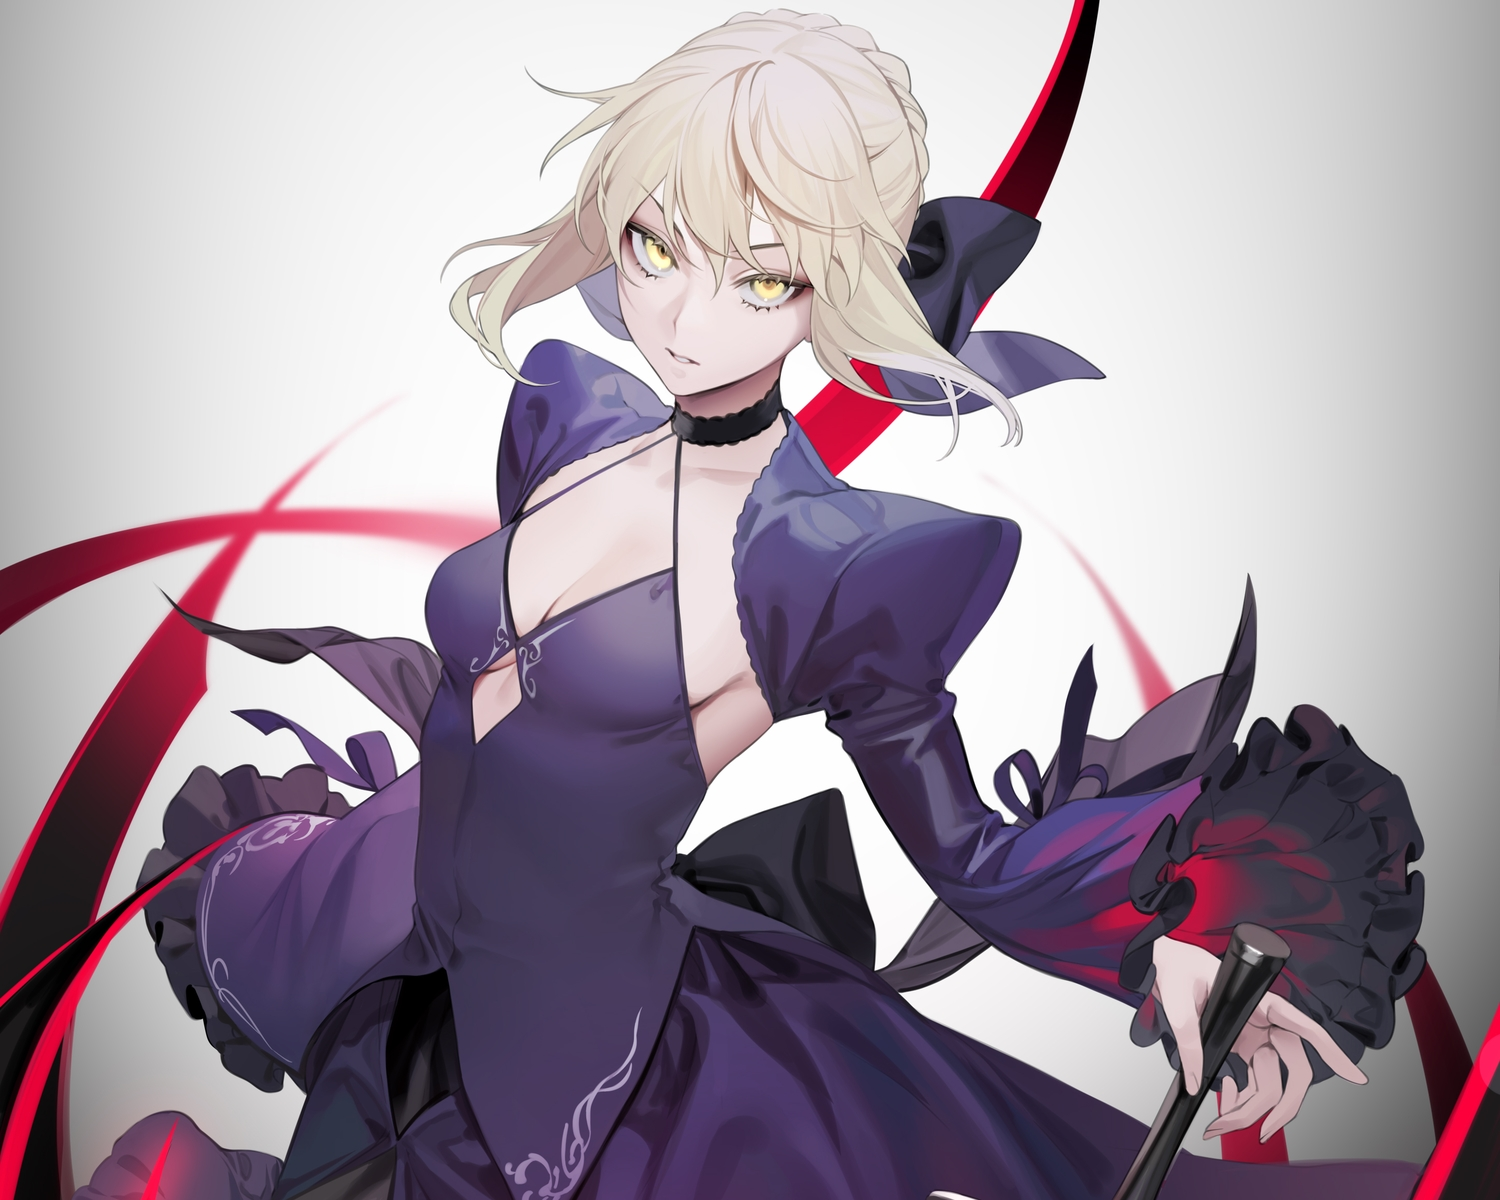 artoria_pendragon_(all) blonde_hair breasts choker cleavage cropped dress fate_(series) fate/stay_night gradient ohisashiburi saber saber_alter sword weapon yellow_eyes